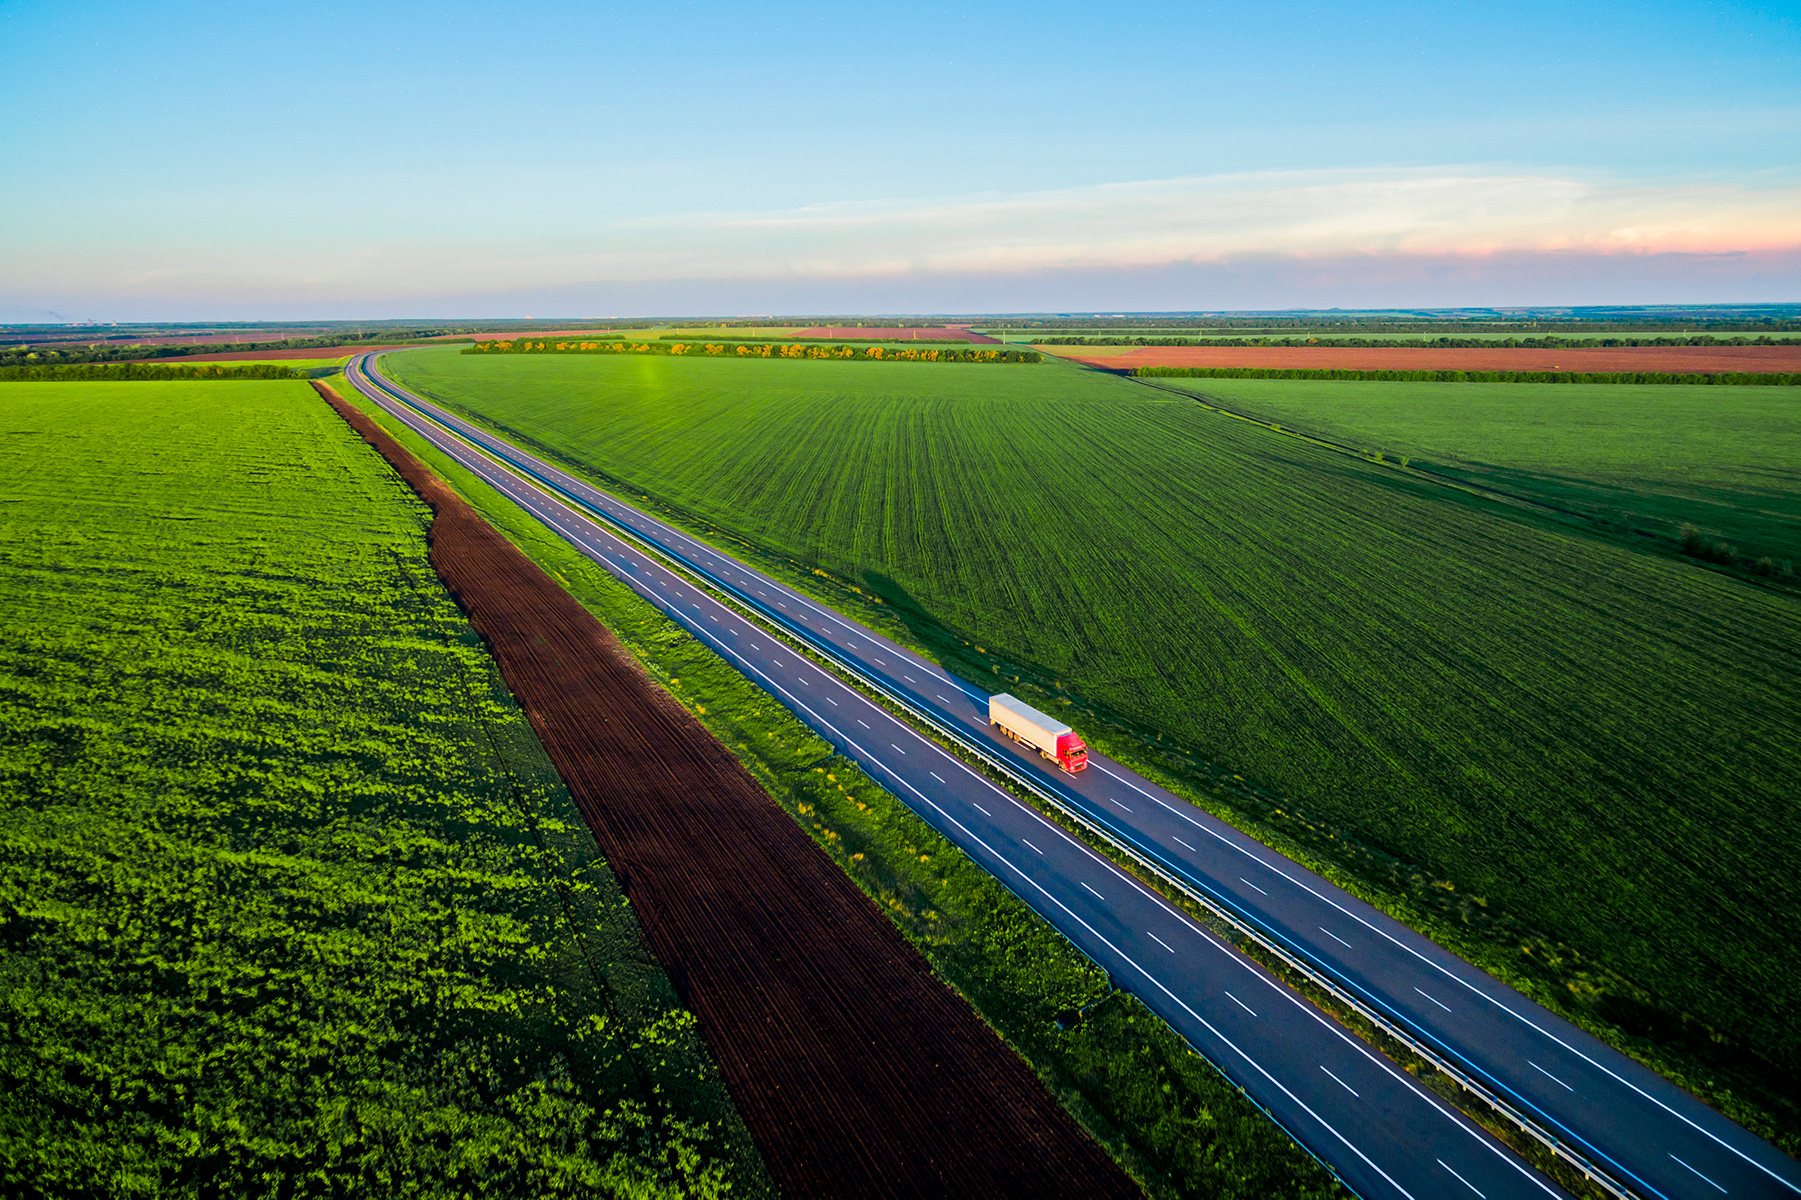 Lorry surrounded by fields